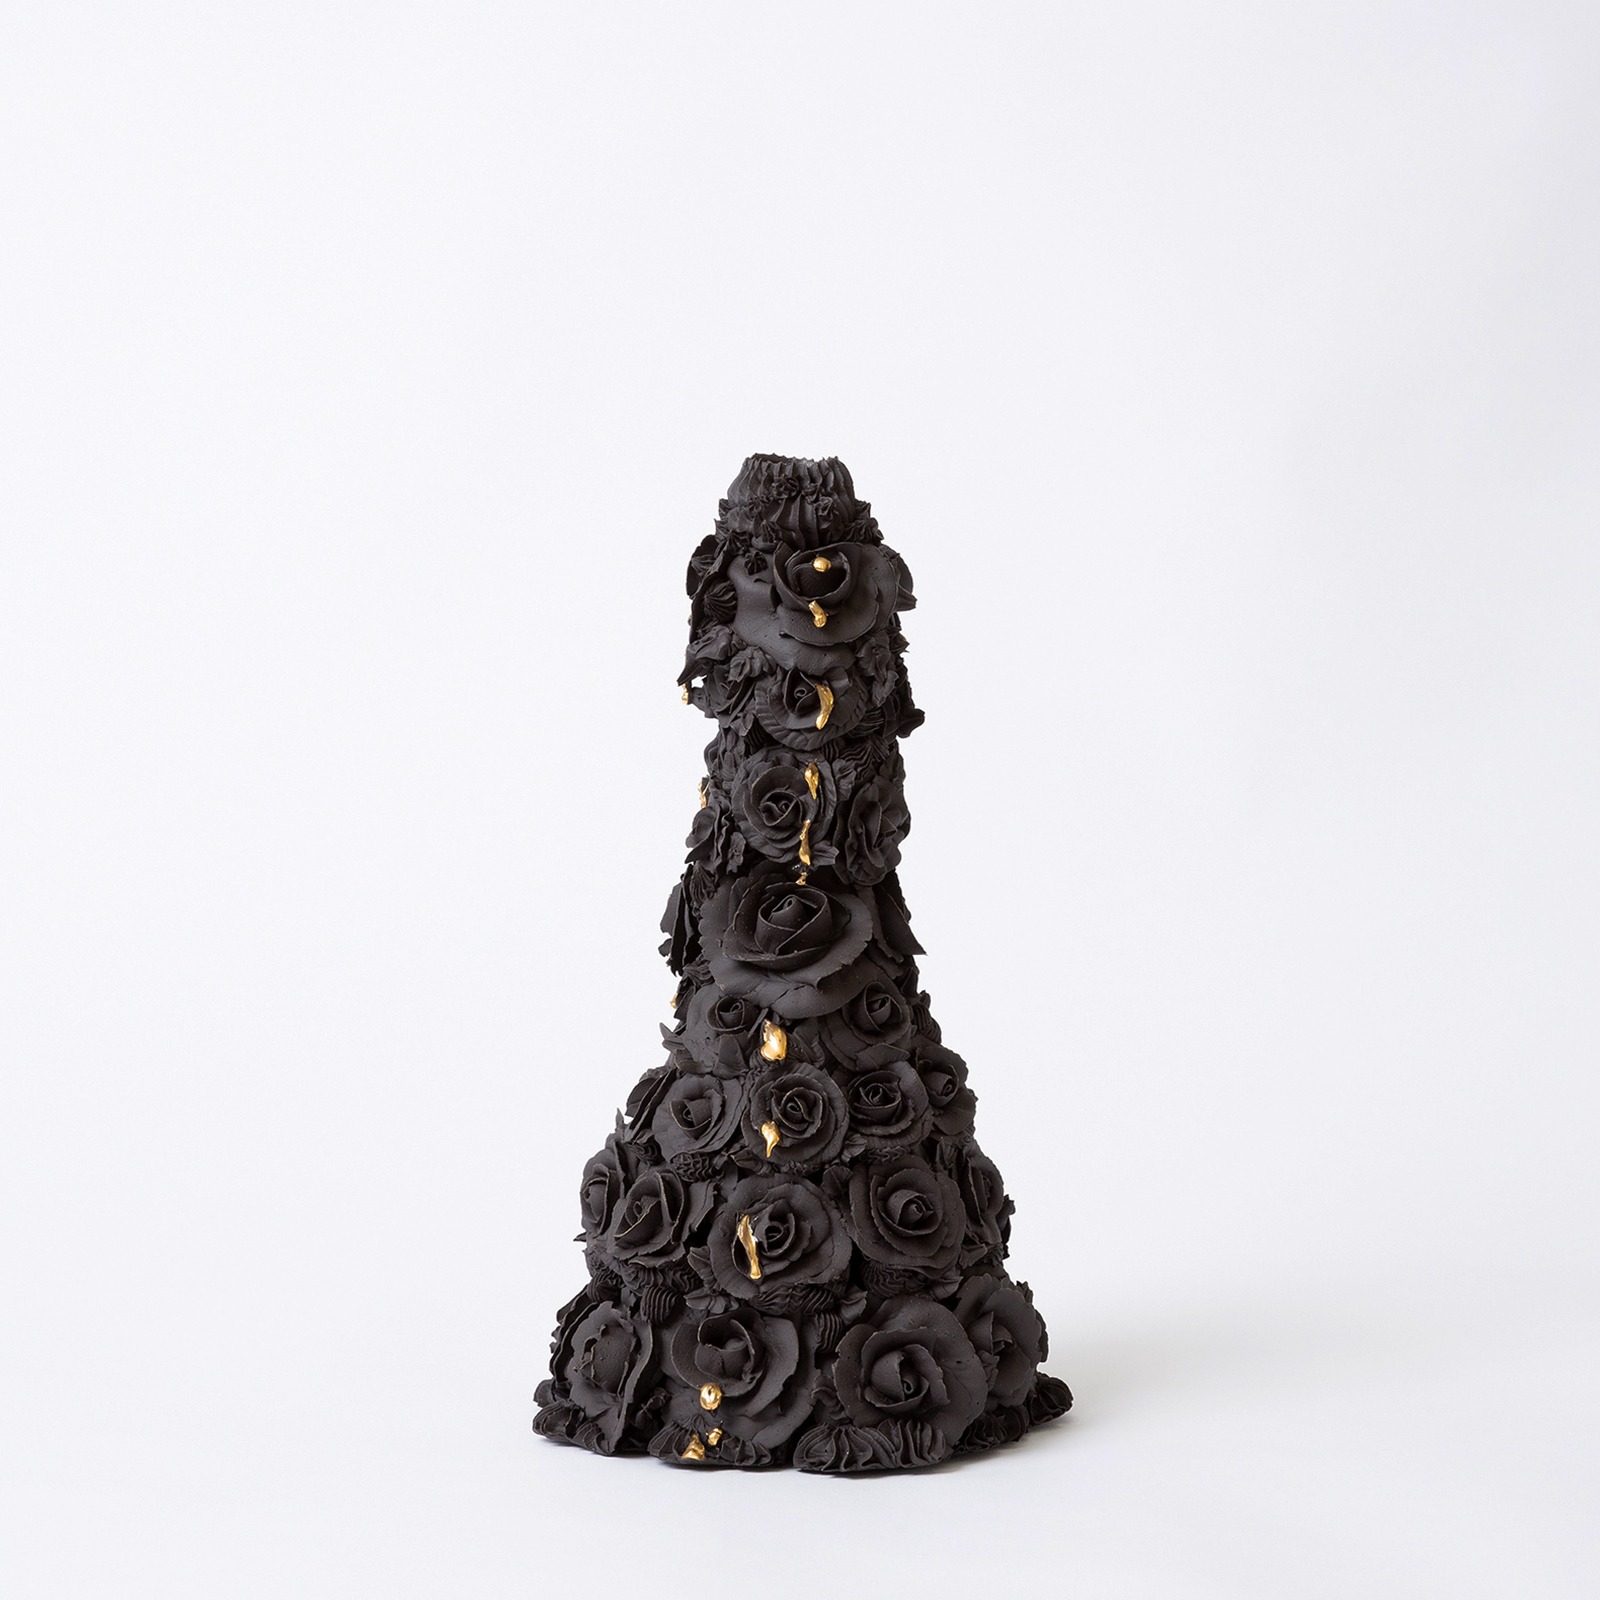 Crying Rose Candelabra In Black With Kitsch Tears In Hand Piped Porcelain By Ebony Russell Hero